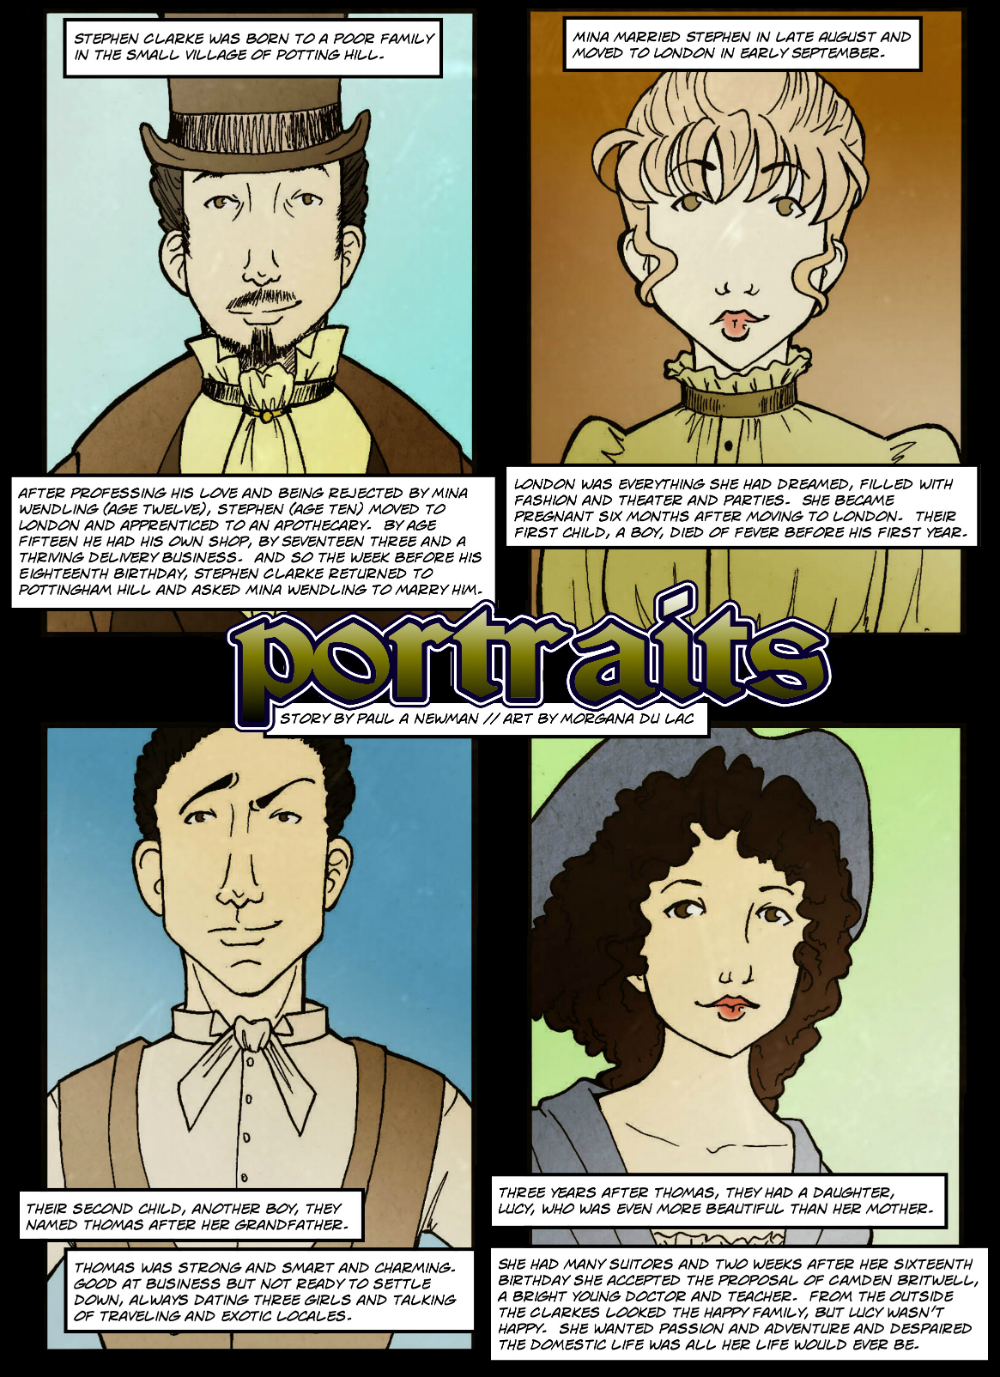 PORTRAITS page 1 - in The Book of Lies